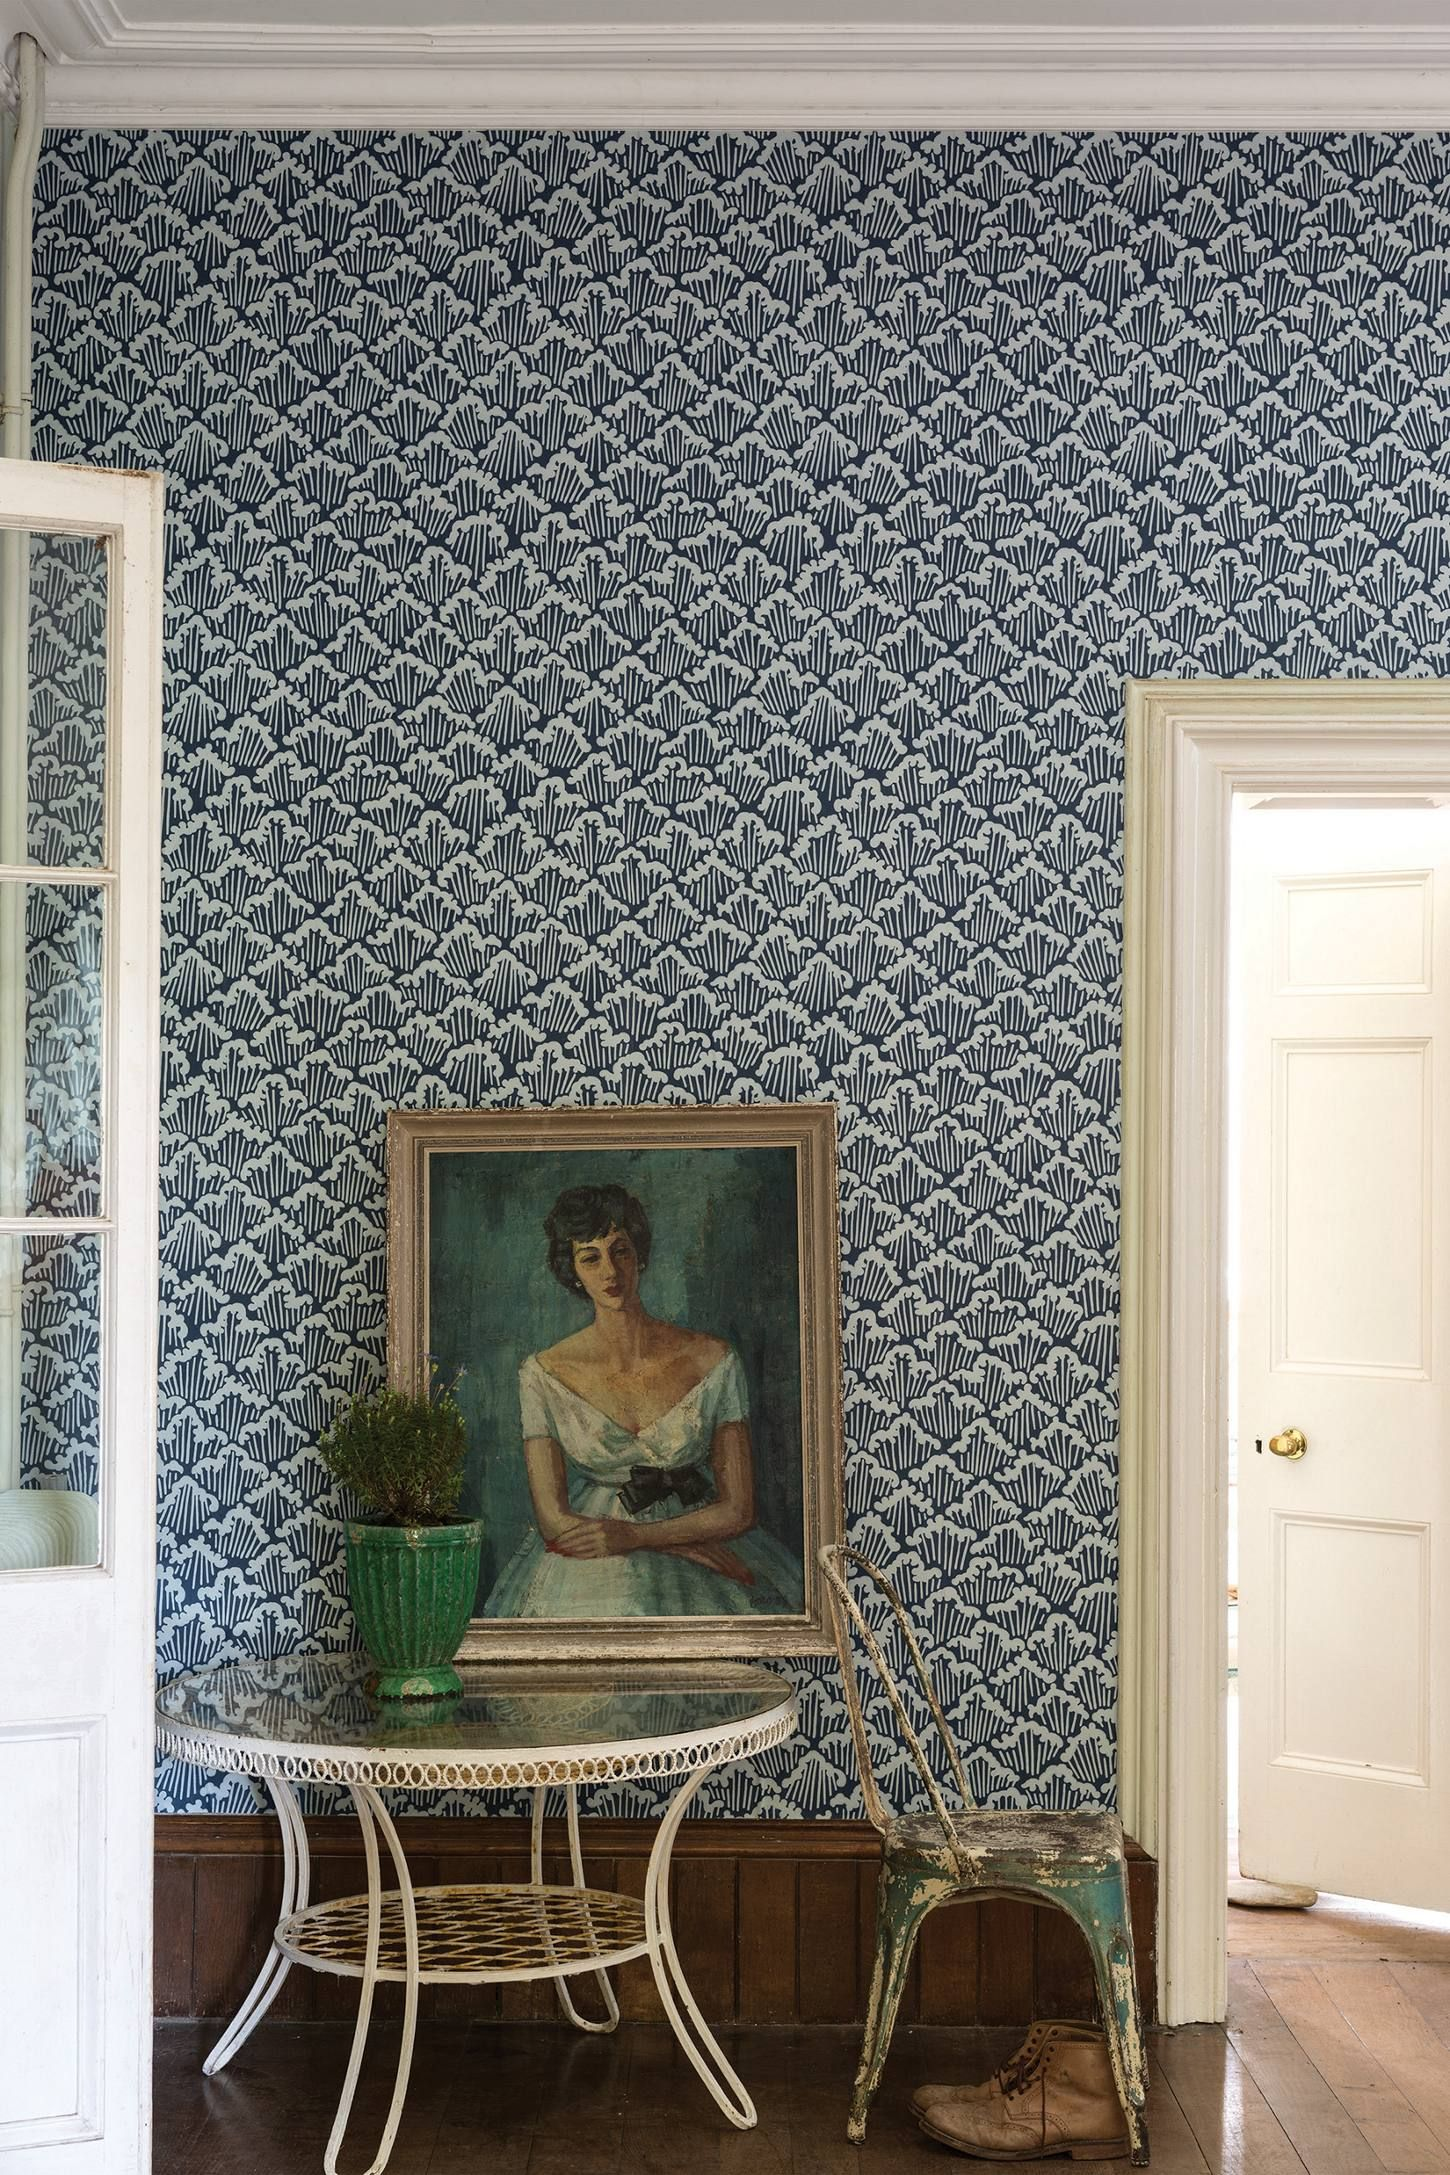 Farrow & Ball Aranami Wallpaper in 2019 Farrow, ball